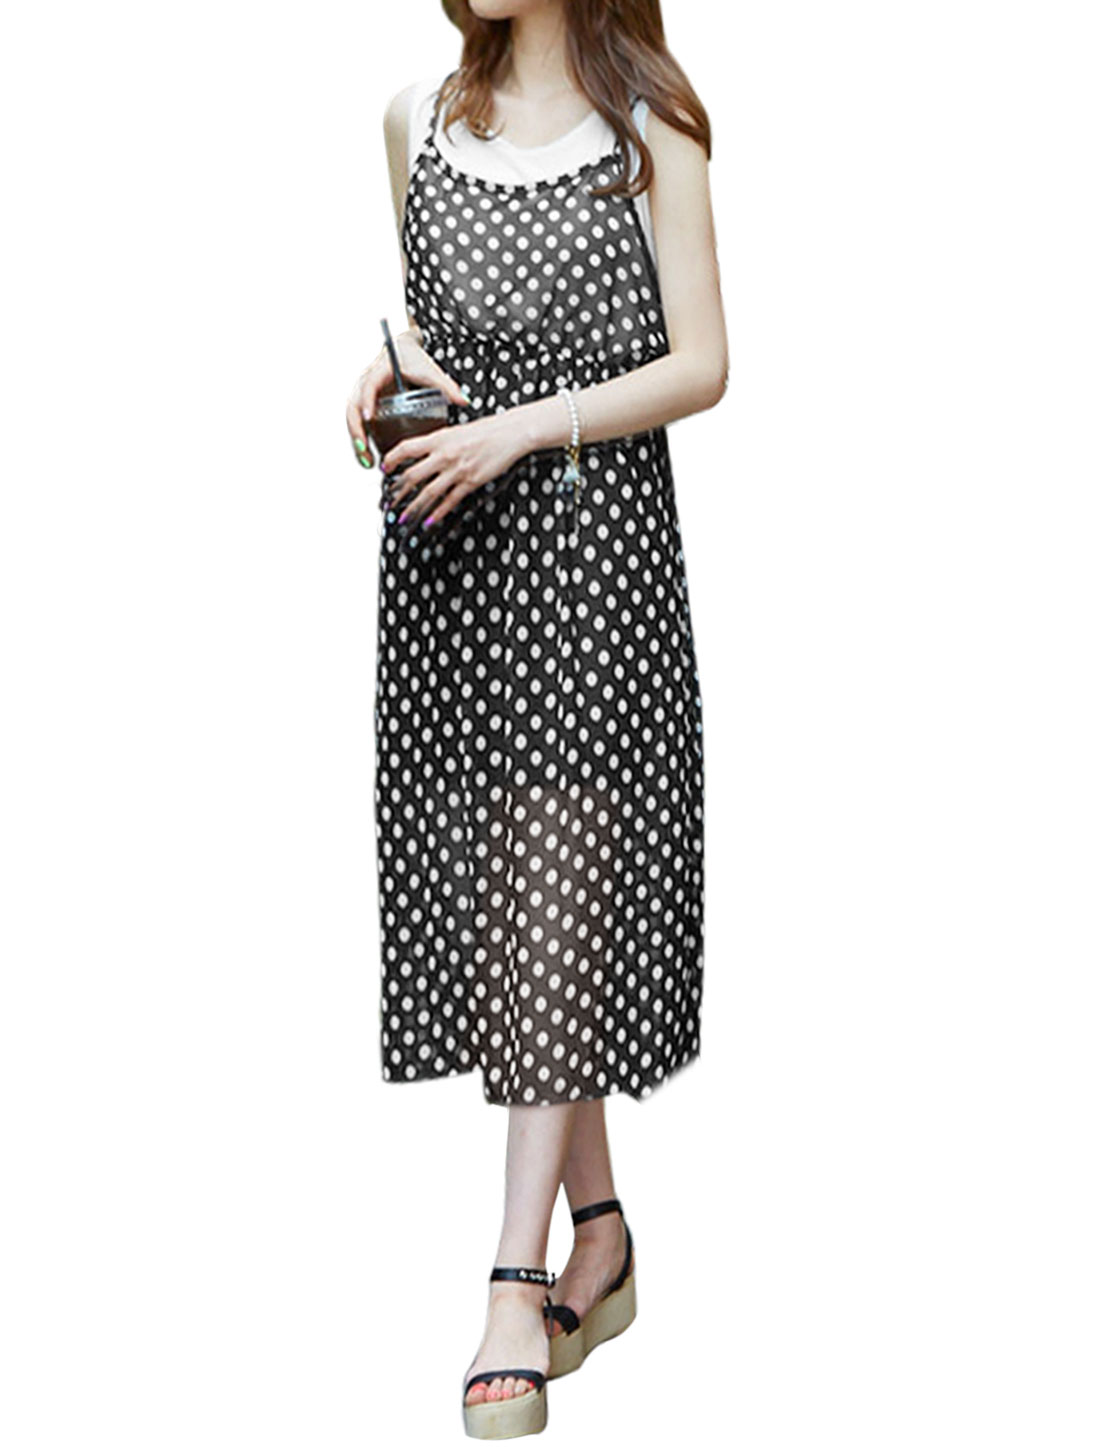 Ladies Sleeveless Top w Dots Elastic Waist Unlined Dress Black S